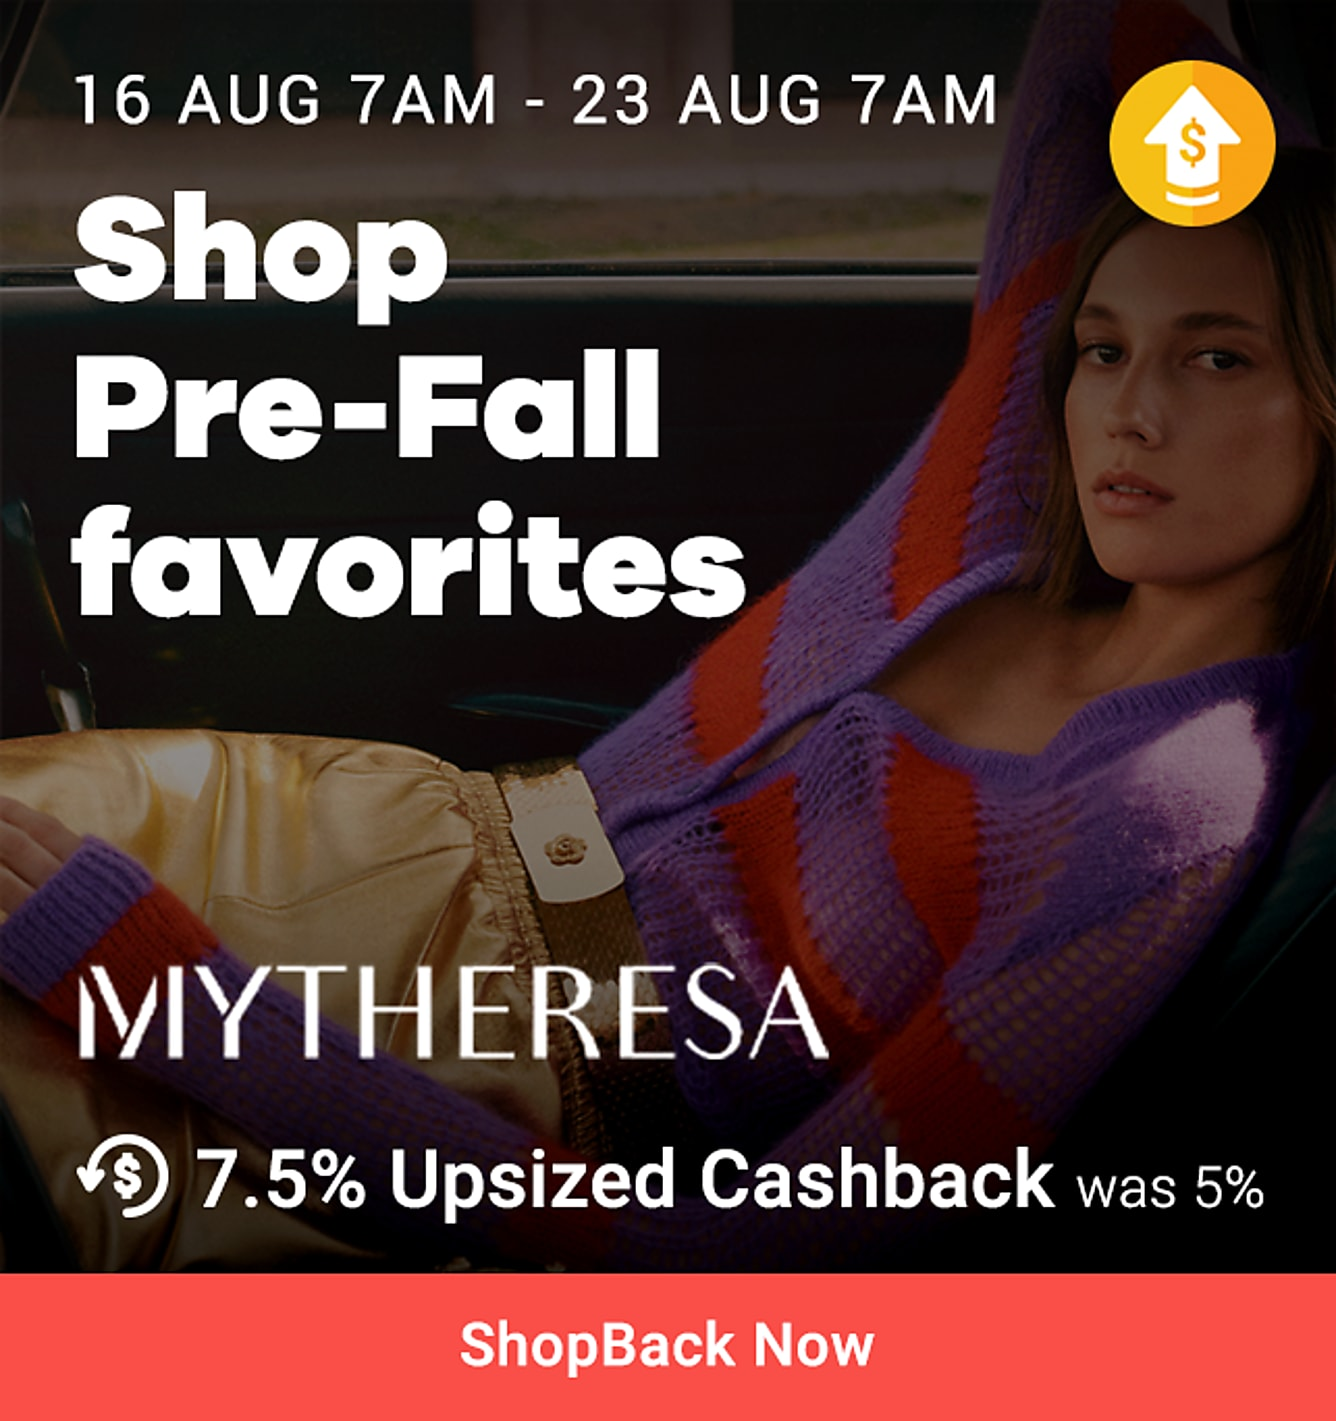 NEW launch Mytheresa + 7.5% upsized (was 5%) 13-19 aug (cannot remove) New on ShopBack 13 Aug 7am - 20 Aug 7am 10% off your first order when you spend over SG$800 + 7.5% upsized Cashback (was 5%)